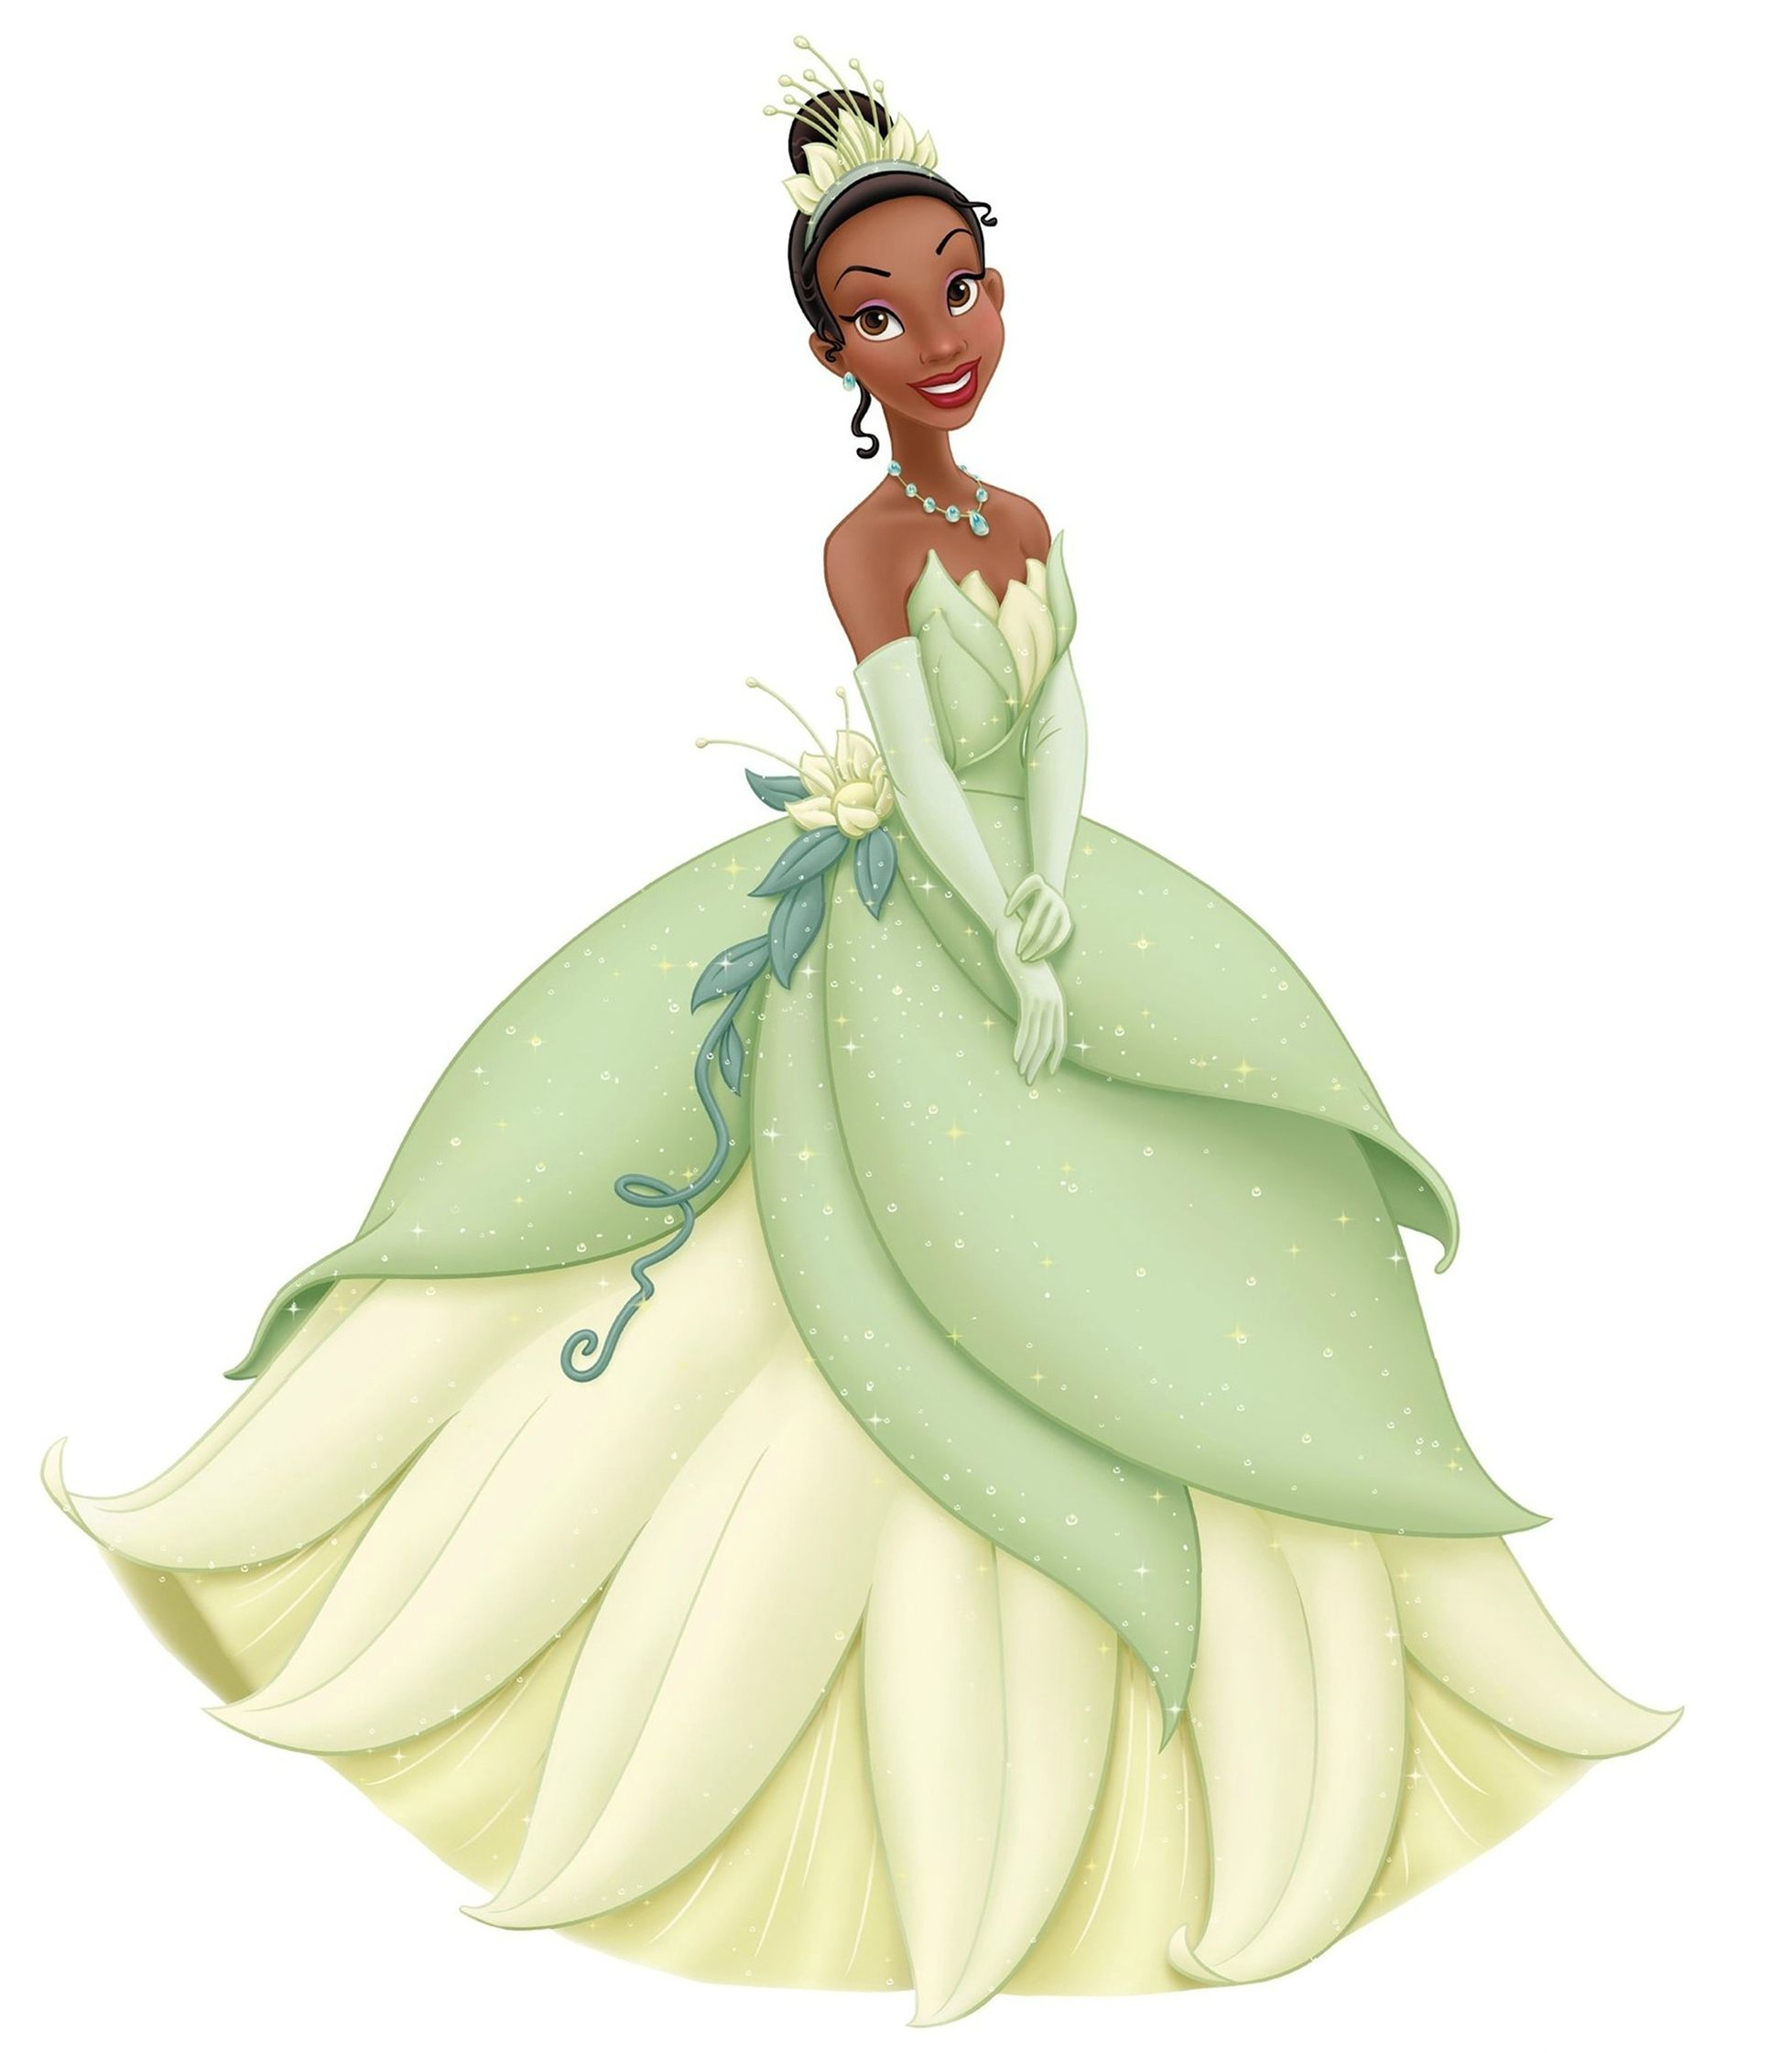 Princess Tiana | Princess Tiana - ✿ Tiana ✿ | Pinterest